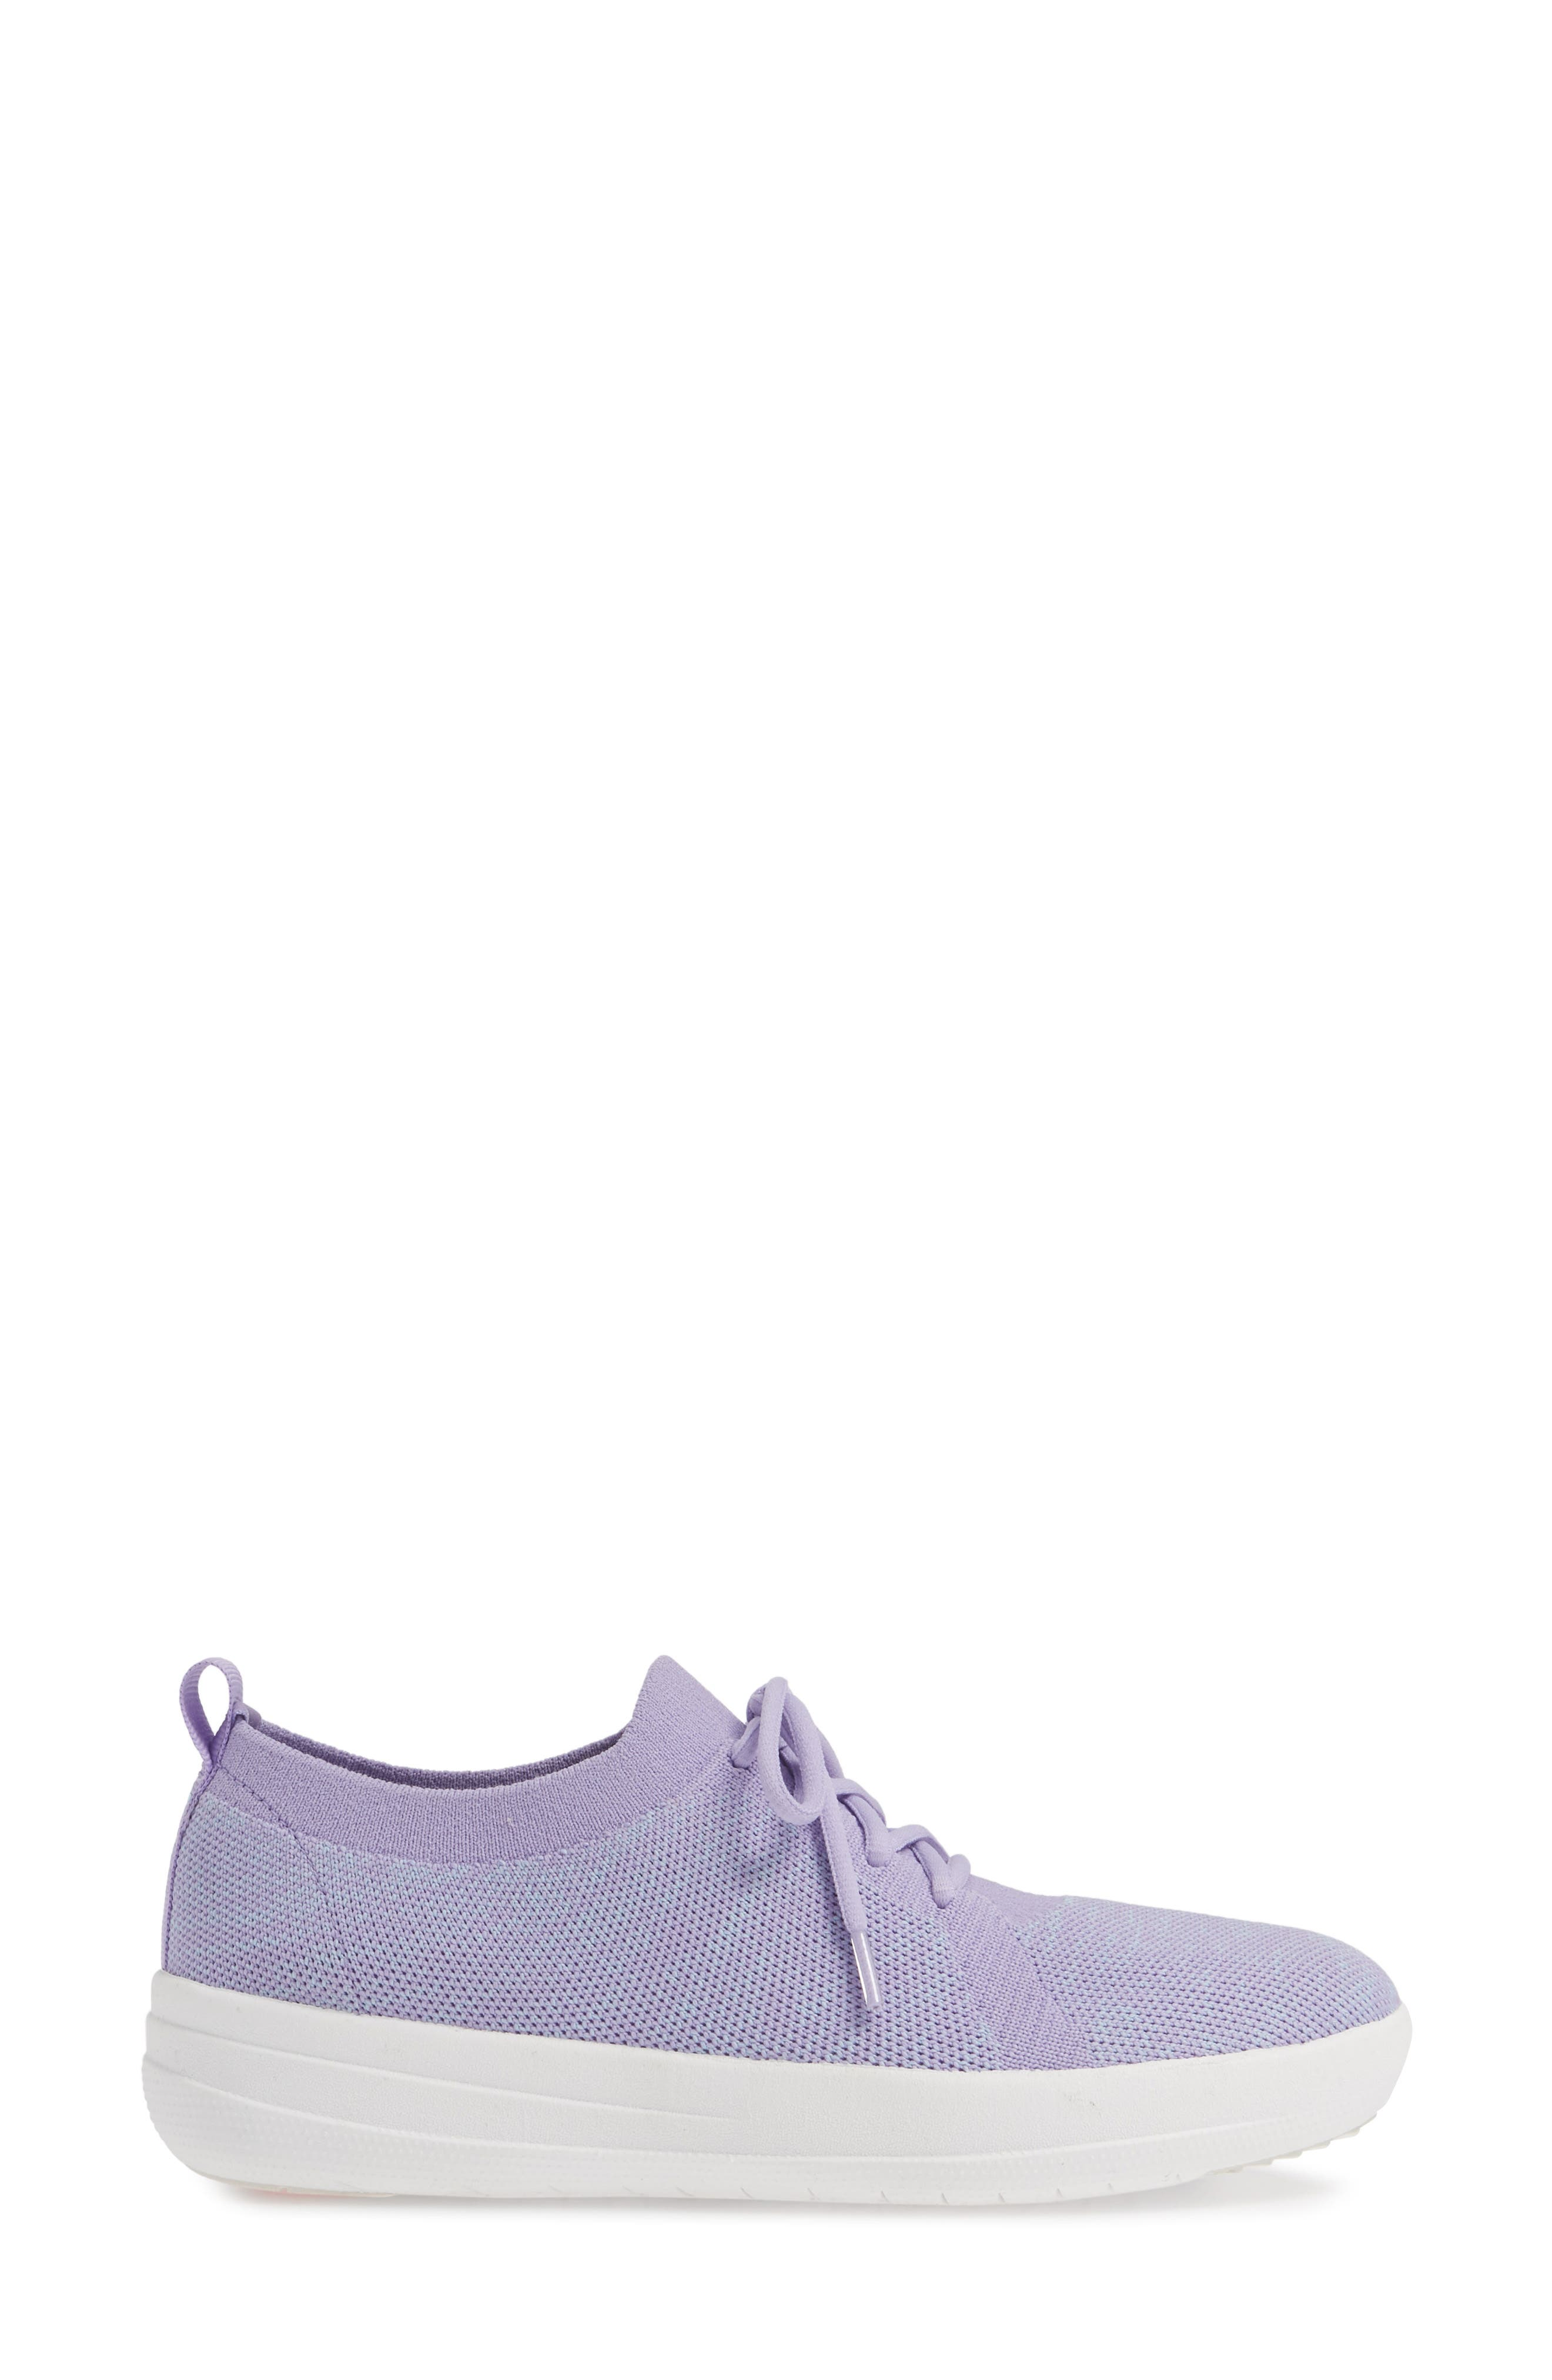 FITFLOP, F-Sporty Uberknit<sup>™</sup> Sneaker, Alternate thumbnail 3, color, 535